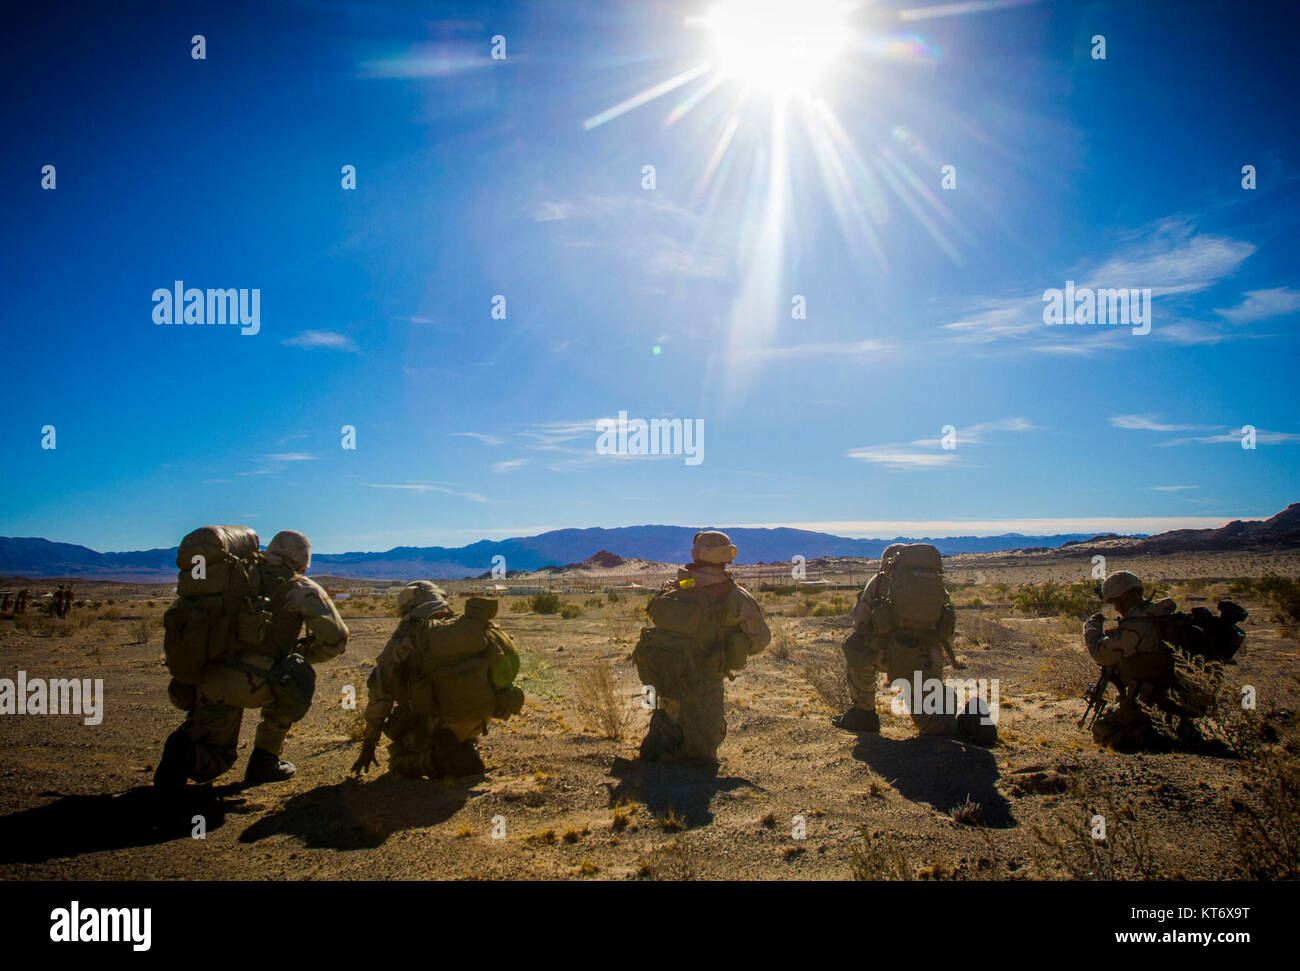 U.S. Marines with 2nd Battalion, 5th Marine Regiment, 1st Marine Division, participate in an air assault as part - Stock Image